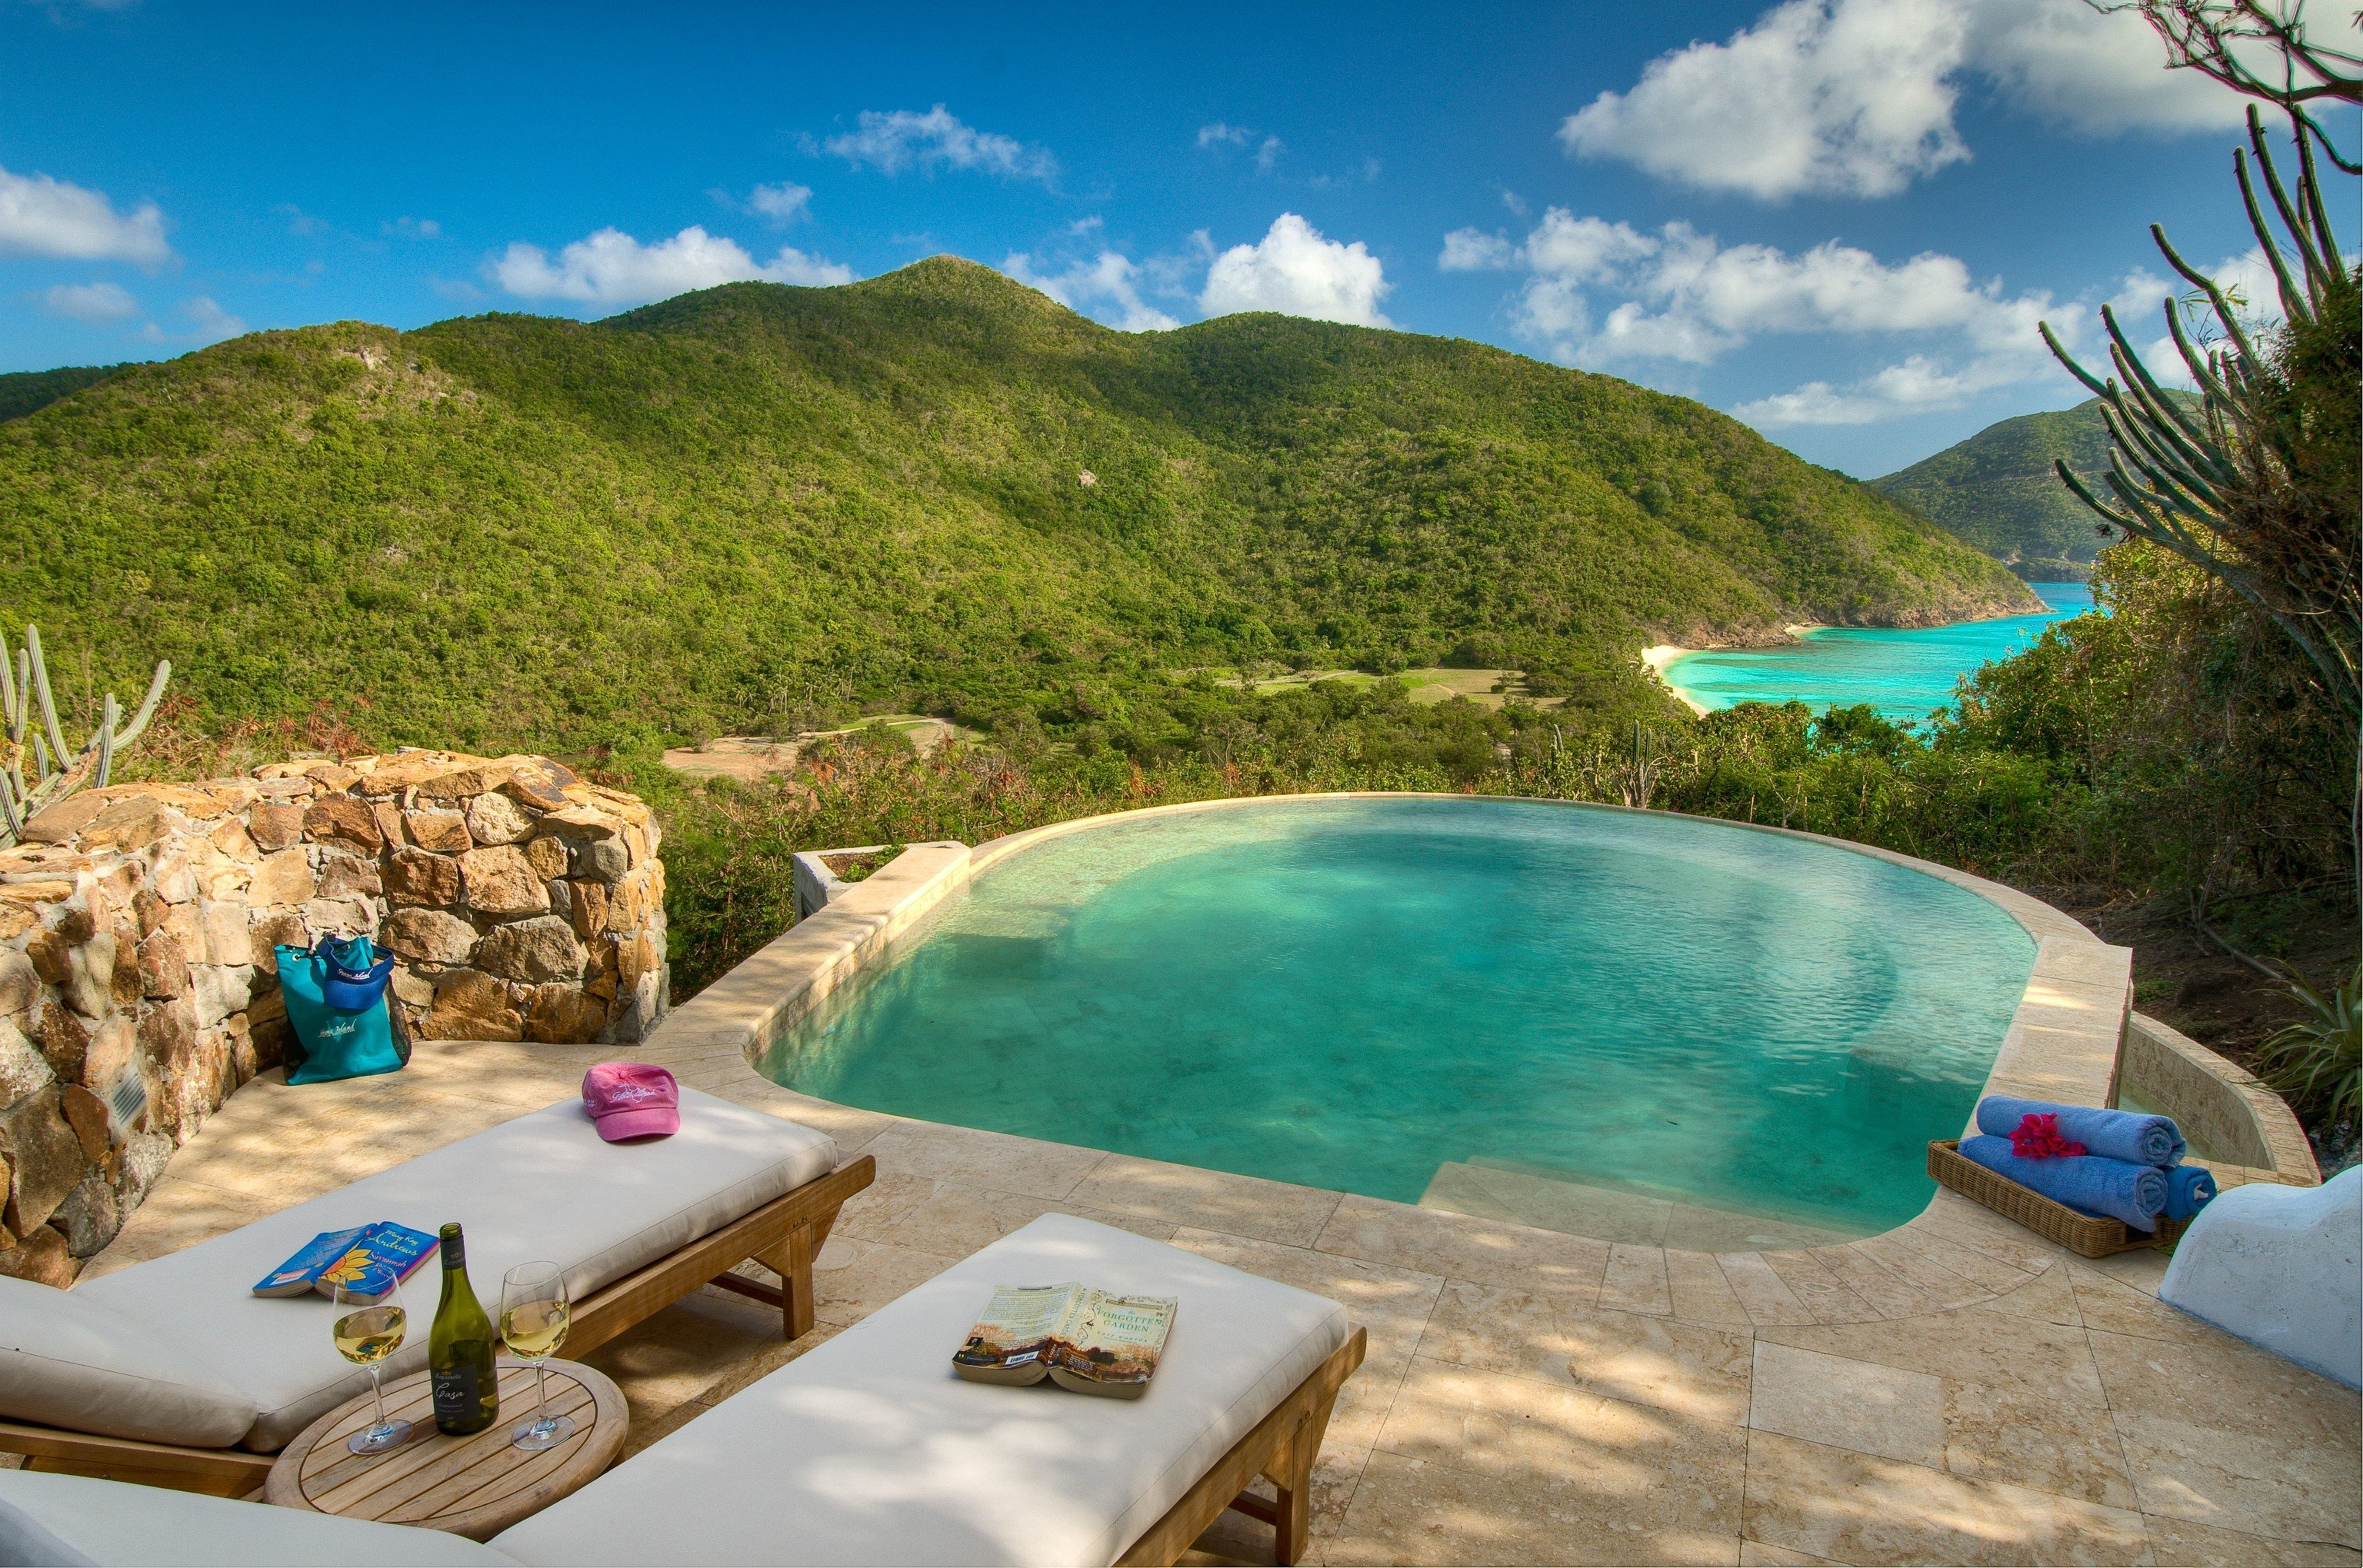 Hotels Trip Ideas sky outdoor swimming pool water Resort leisure vacation caribbean estate tourism bay landscape mountain resort town tropics